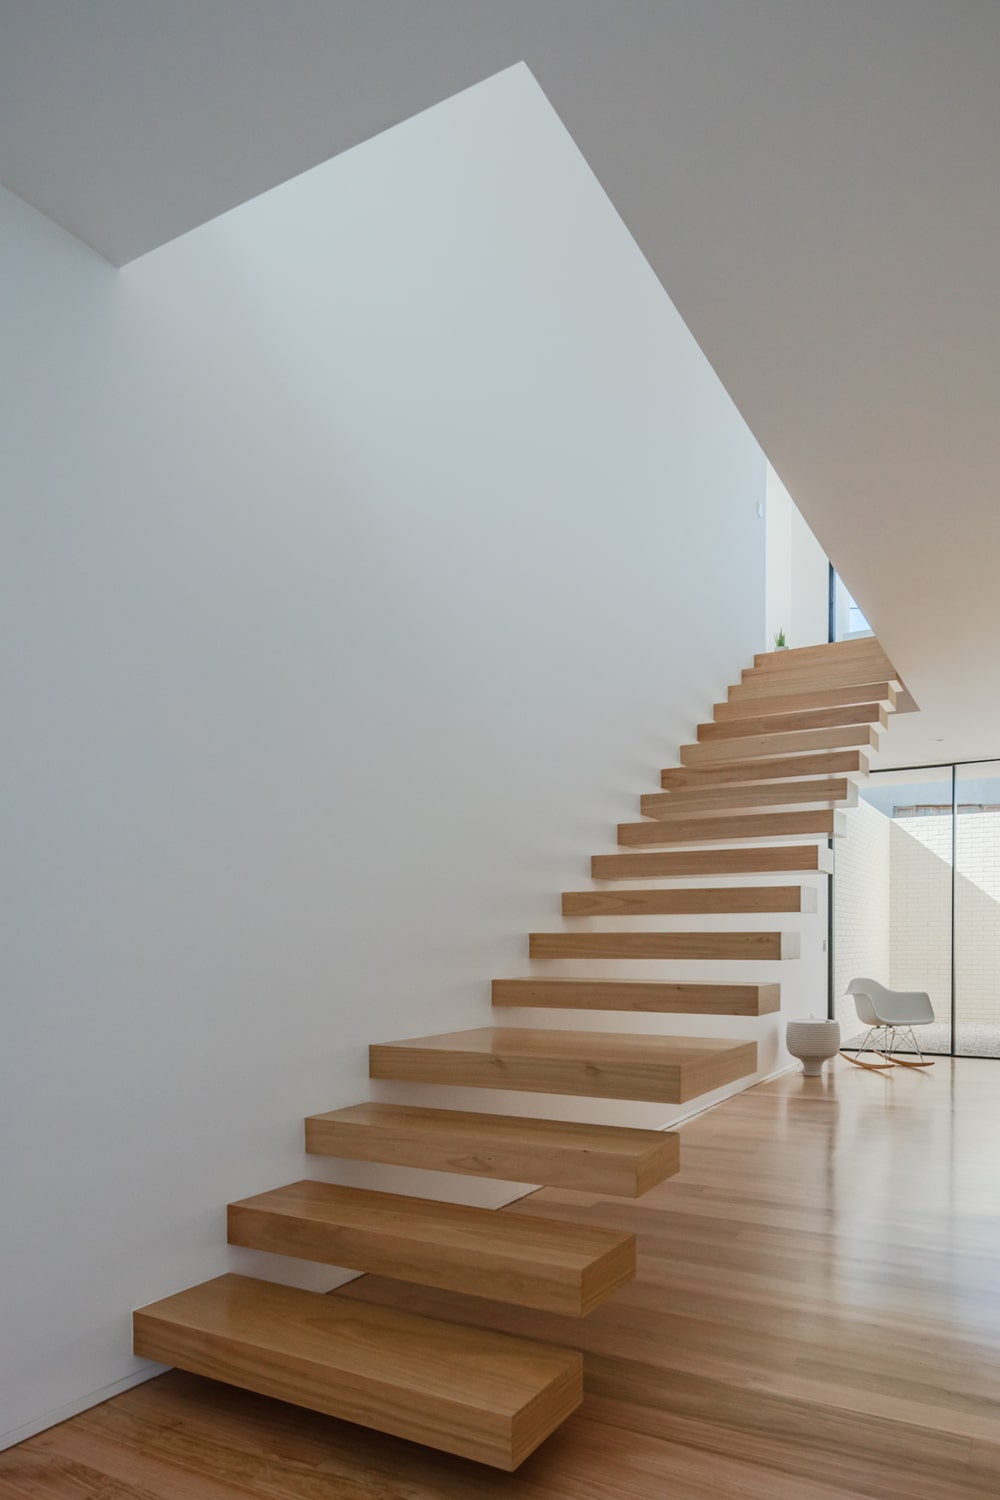 A few steps from the that area is the staircase with a modern floating steps design.